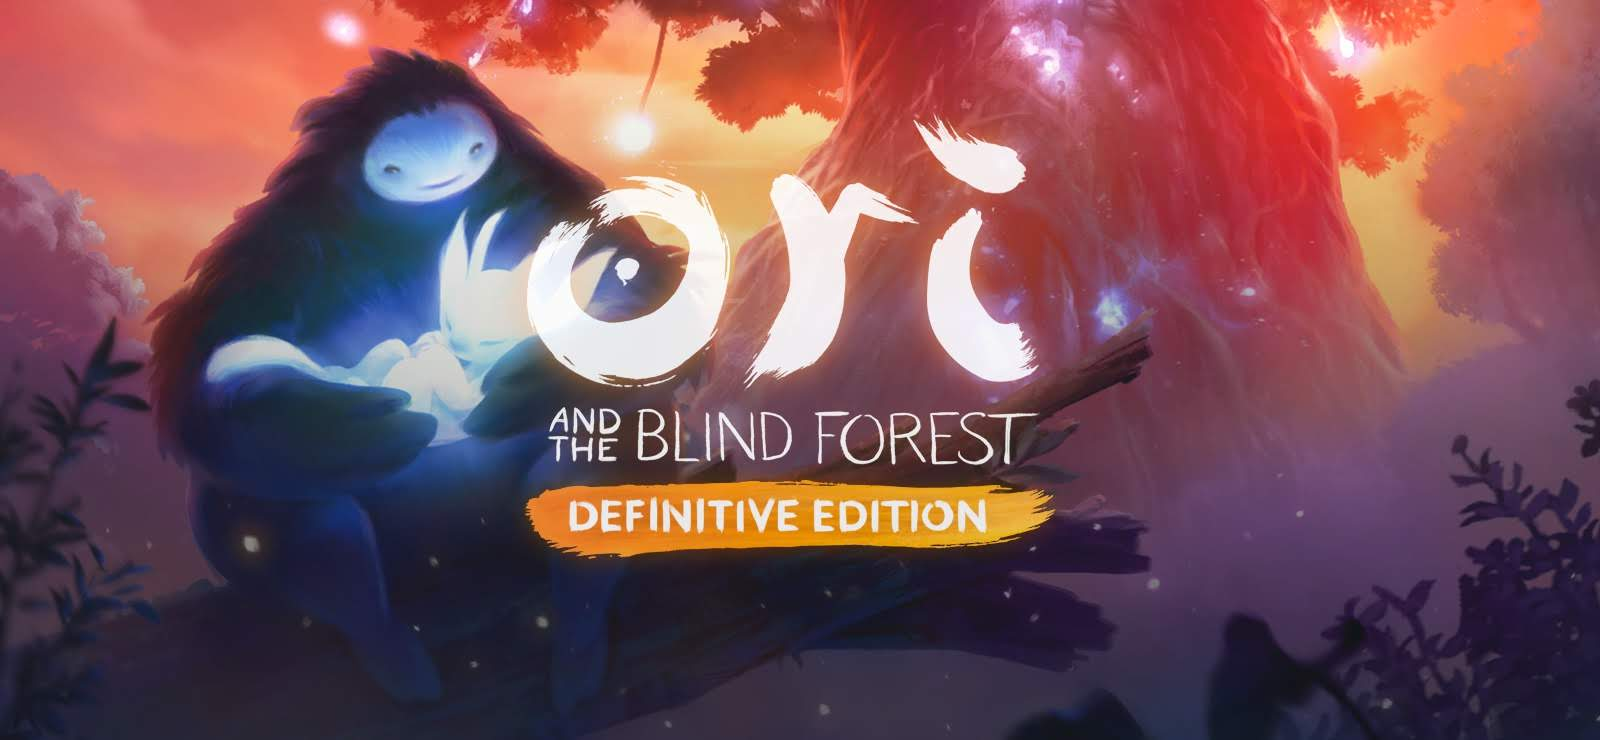 ori-and-the-blind-forest-definitive-edition-viet-hoa